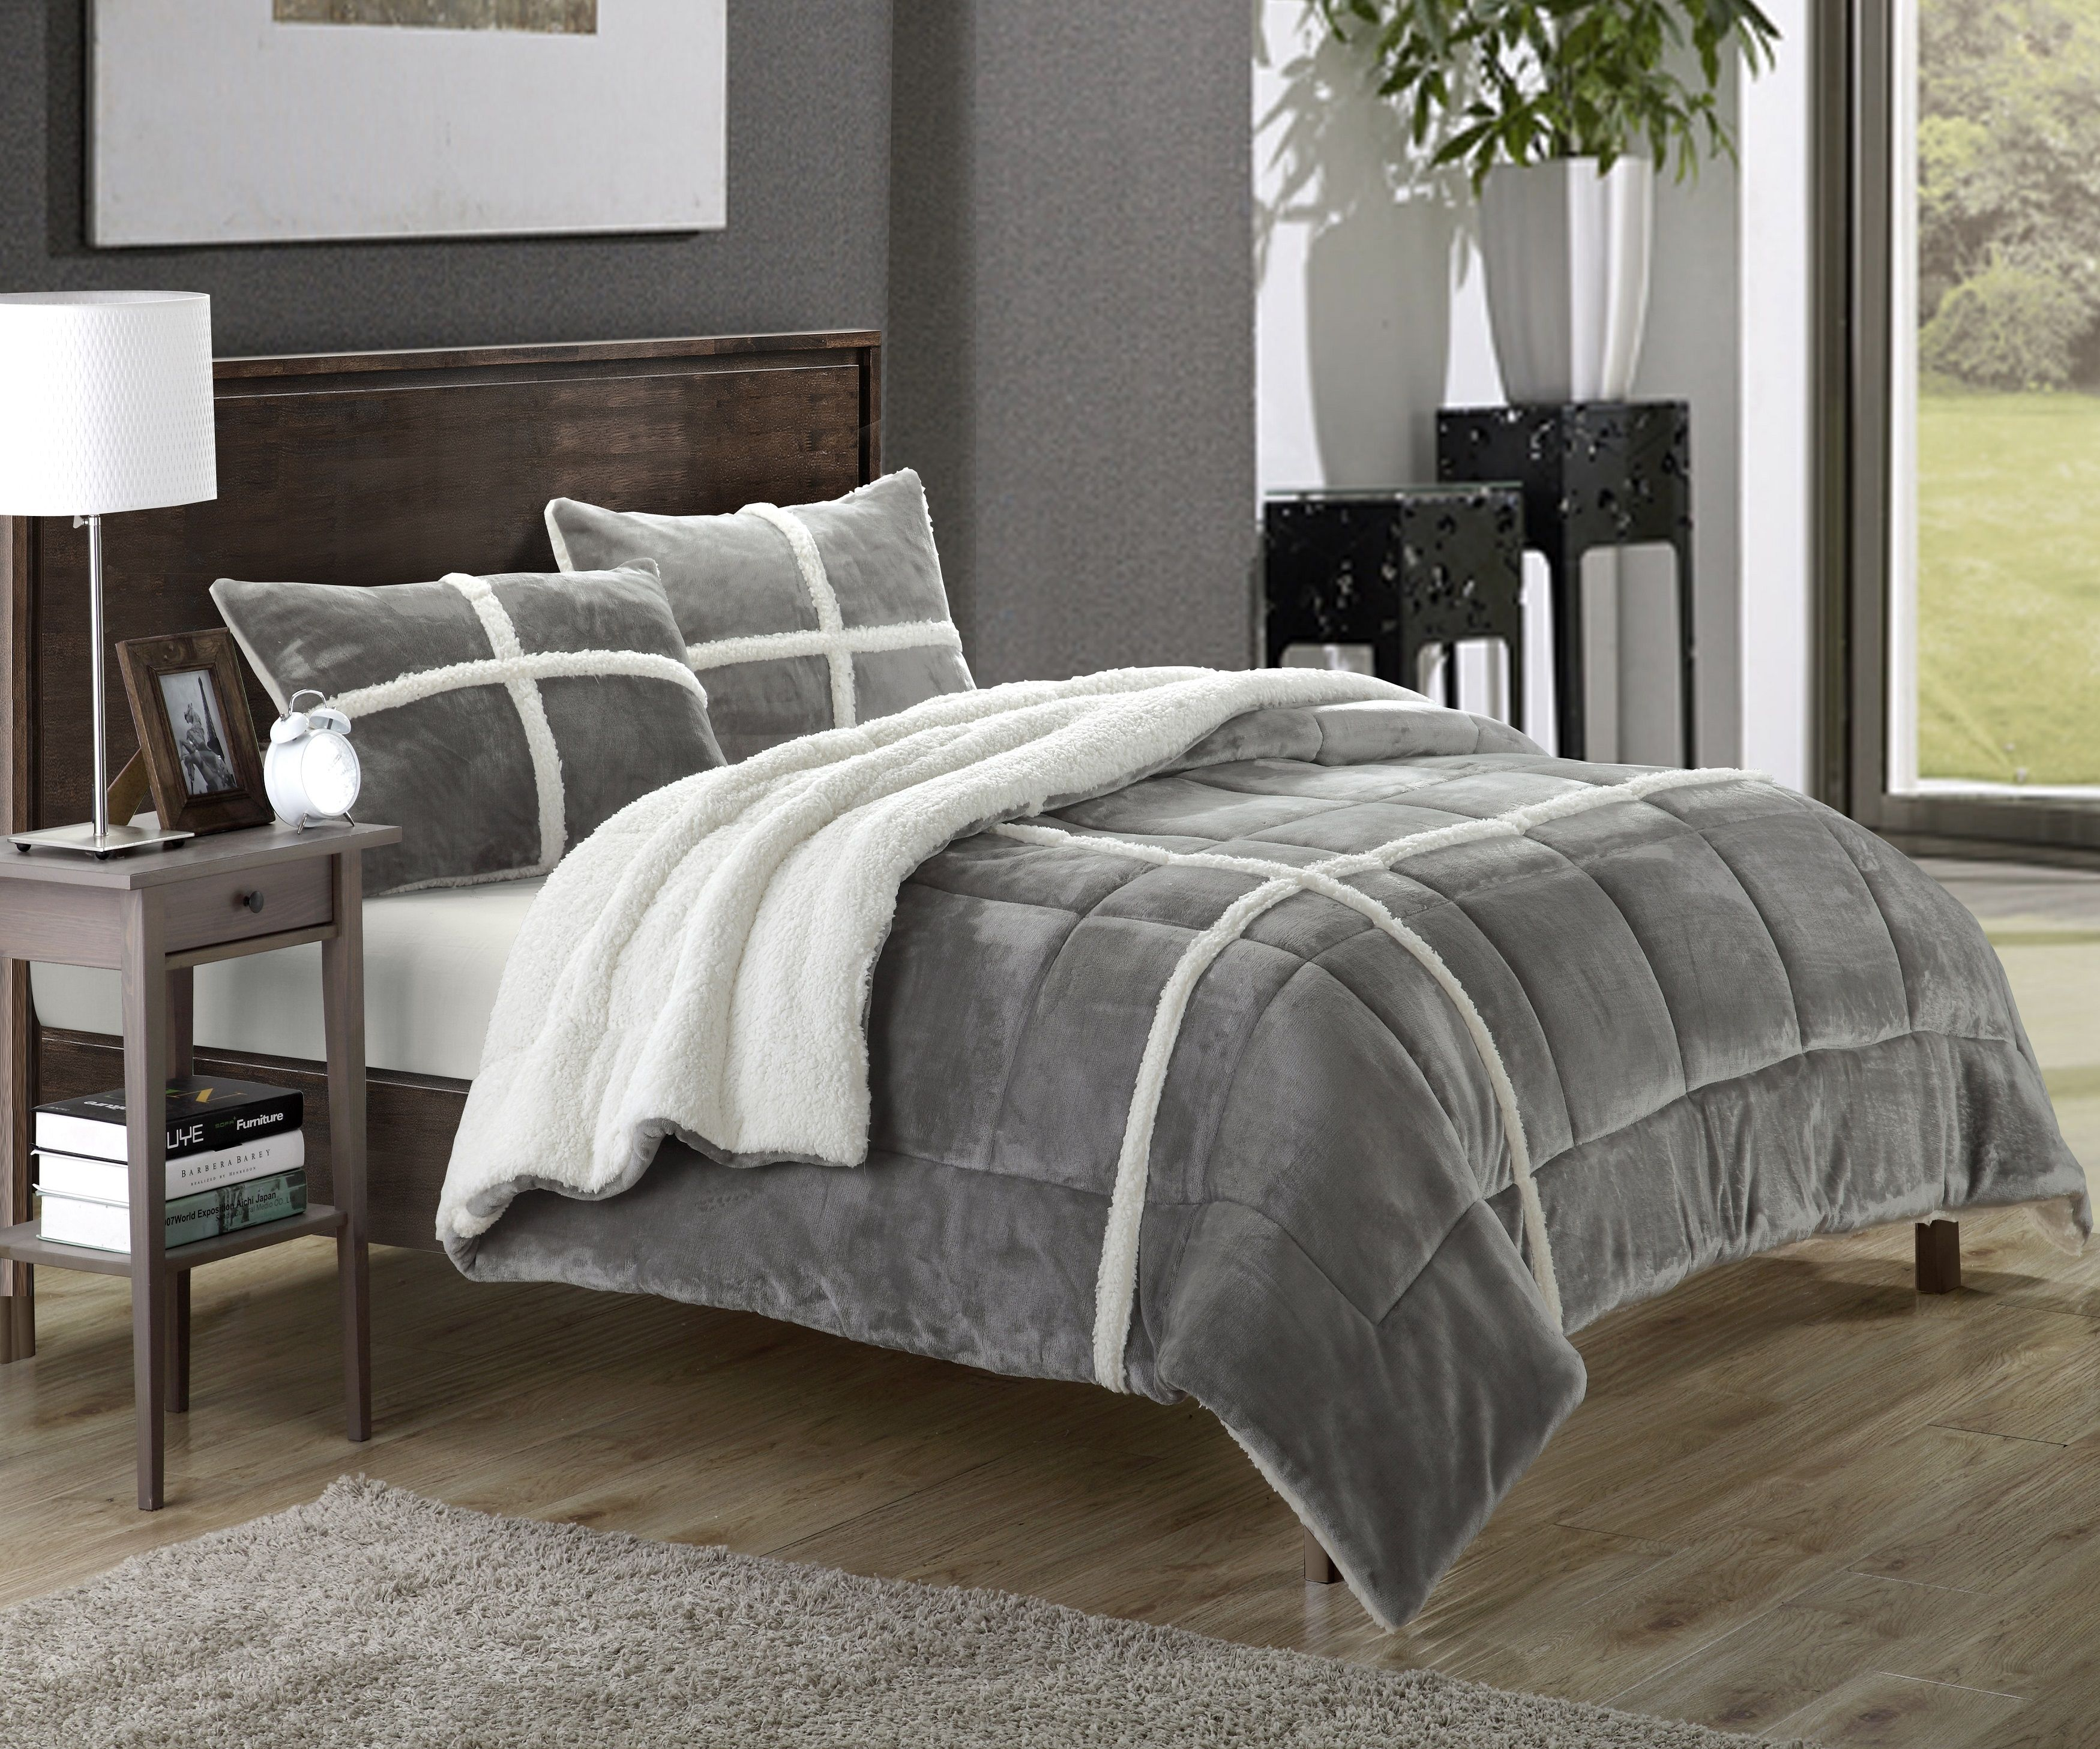 Chic Home Chloe 15-Piece Sherpa Lined Plush Microsuede Comforter ...